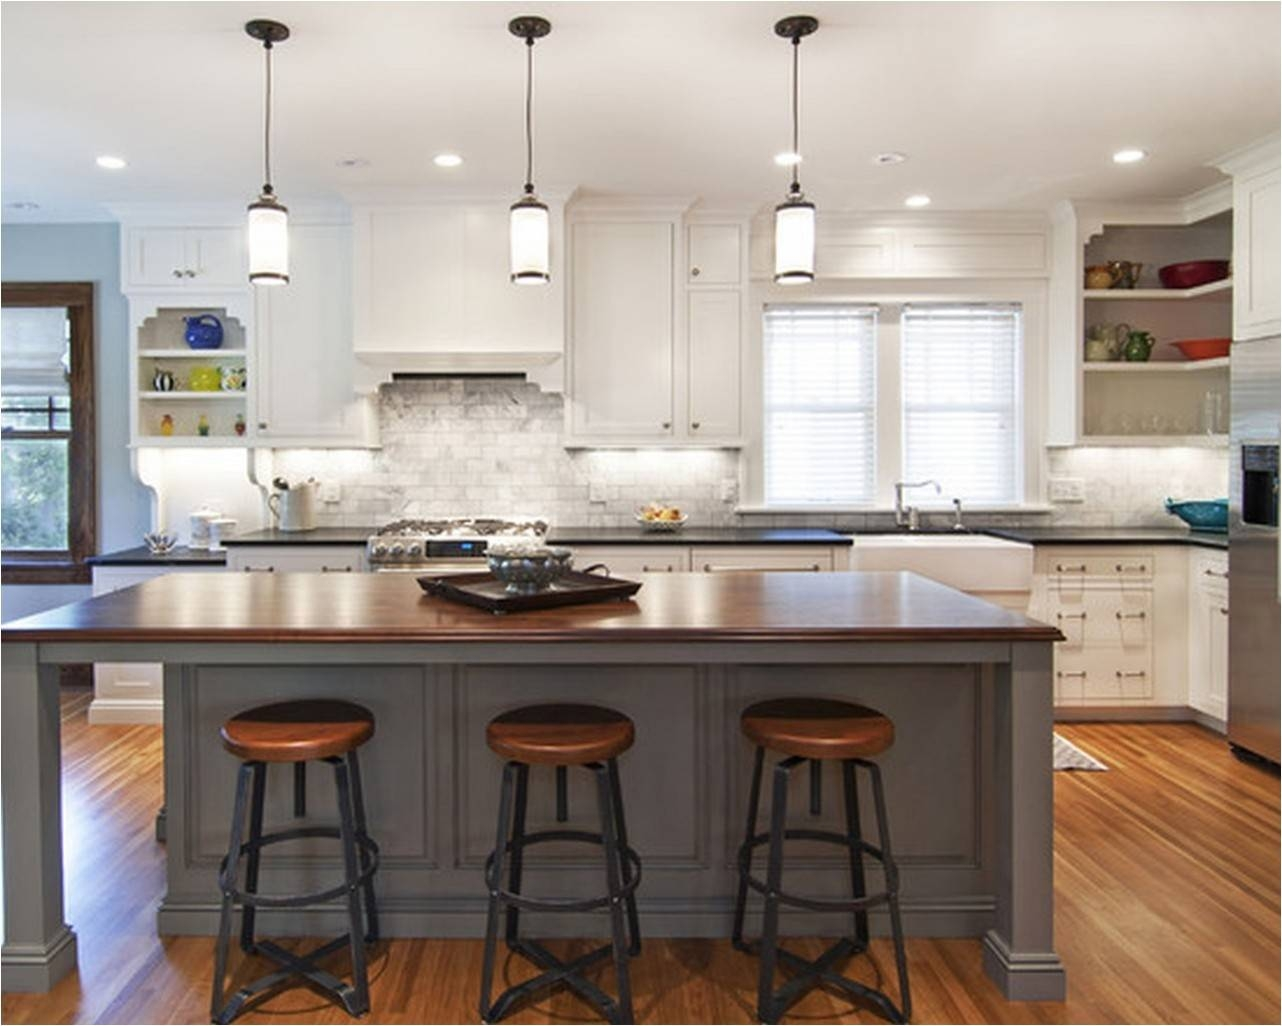 Cozy And Inviting Kitchen Island Lighting | Lighting Designs Ideas intended for Mini Pendant Lighting For Kitchen Island (Image 2 of 15)